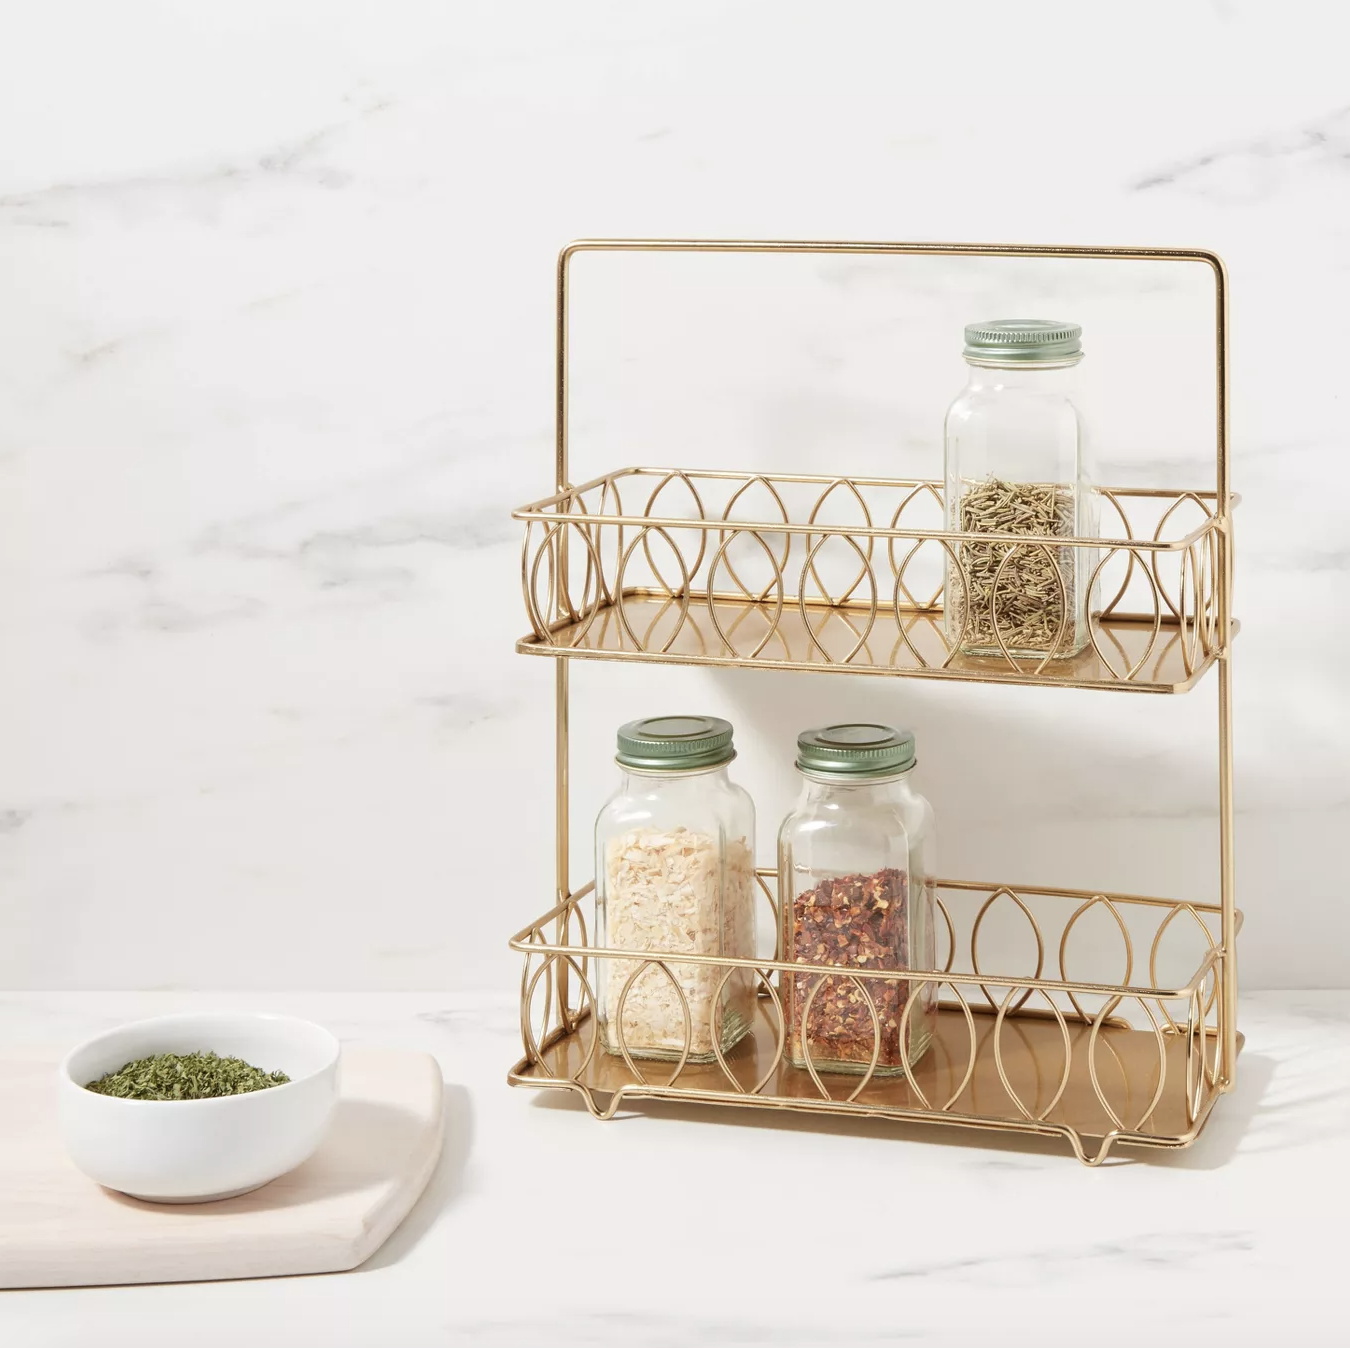 the two-tiered golden spice rack